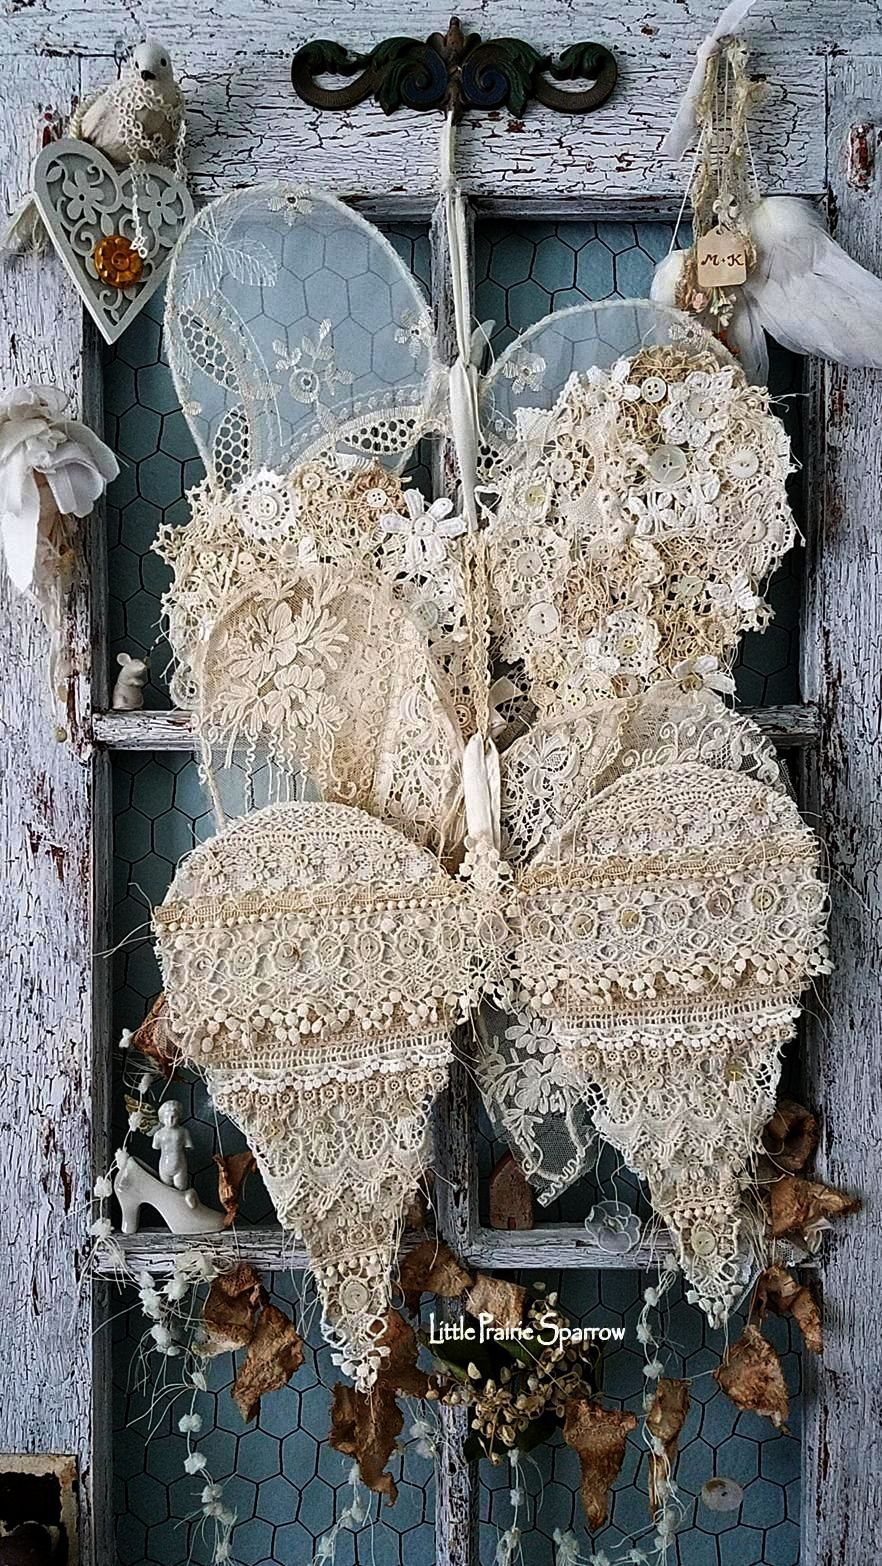 Home Decor Outlet Strip District Home Decor Places Near Me Every Home Decor Furniture Inc Tampa Opposite Home Decor Signs Shabby Chic Crafts Vintage Shabby Chic Shabby Vintage